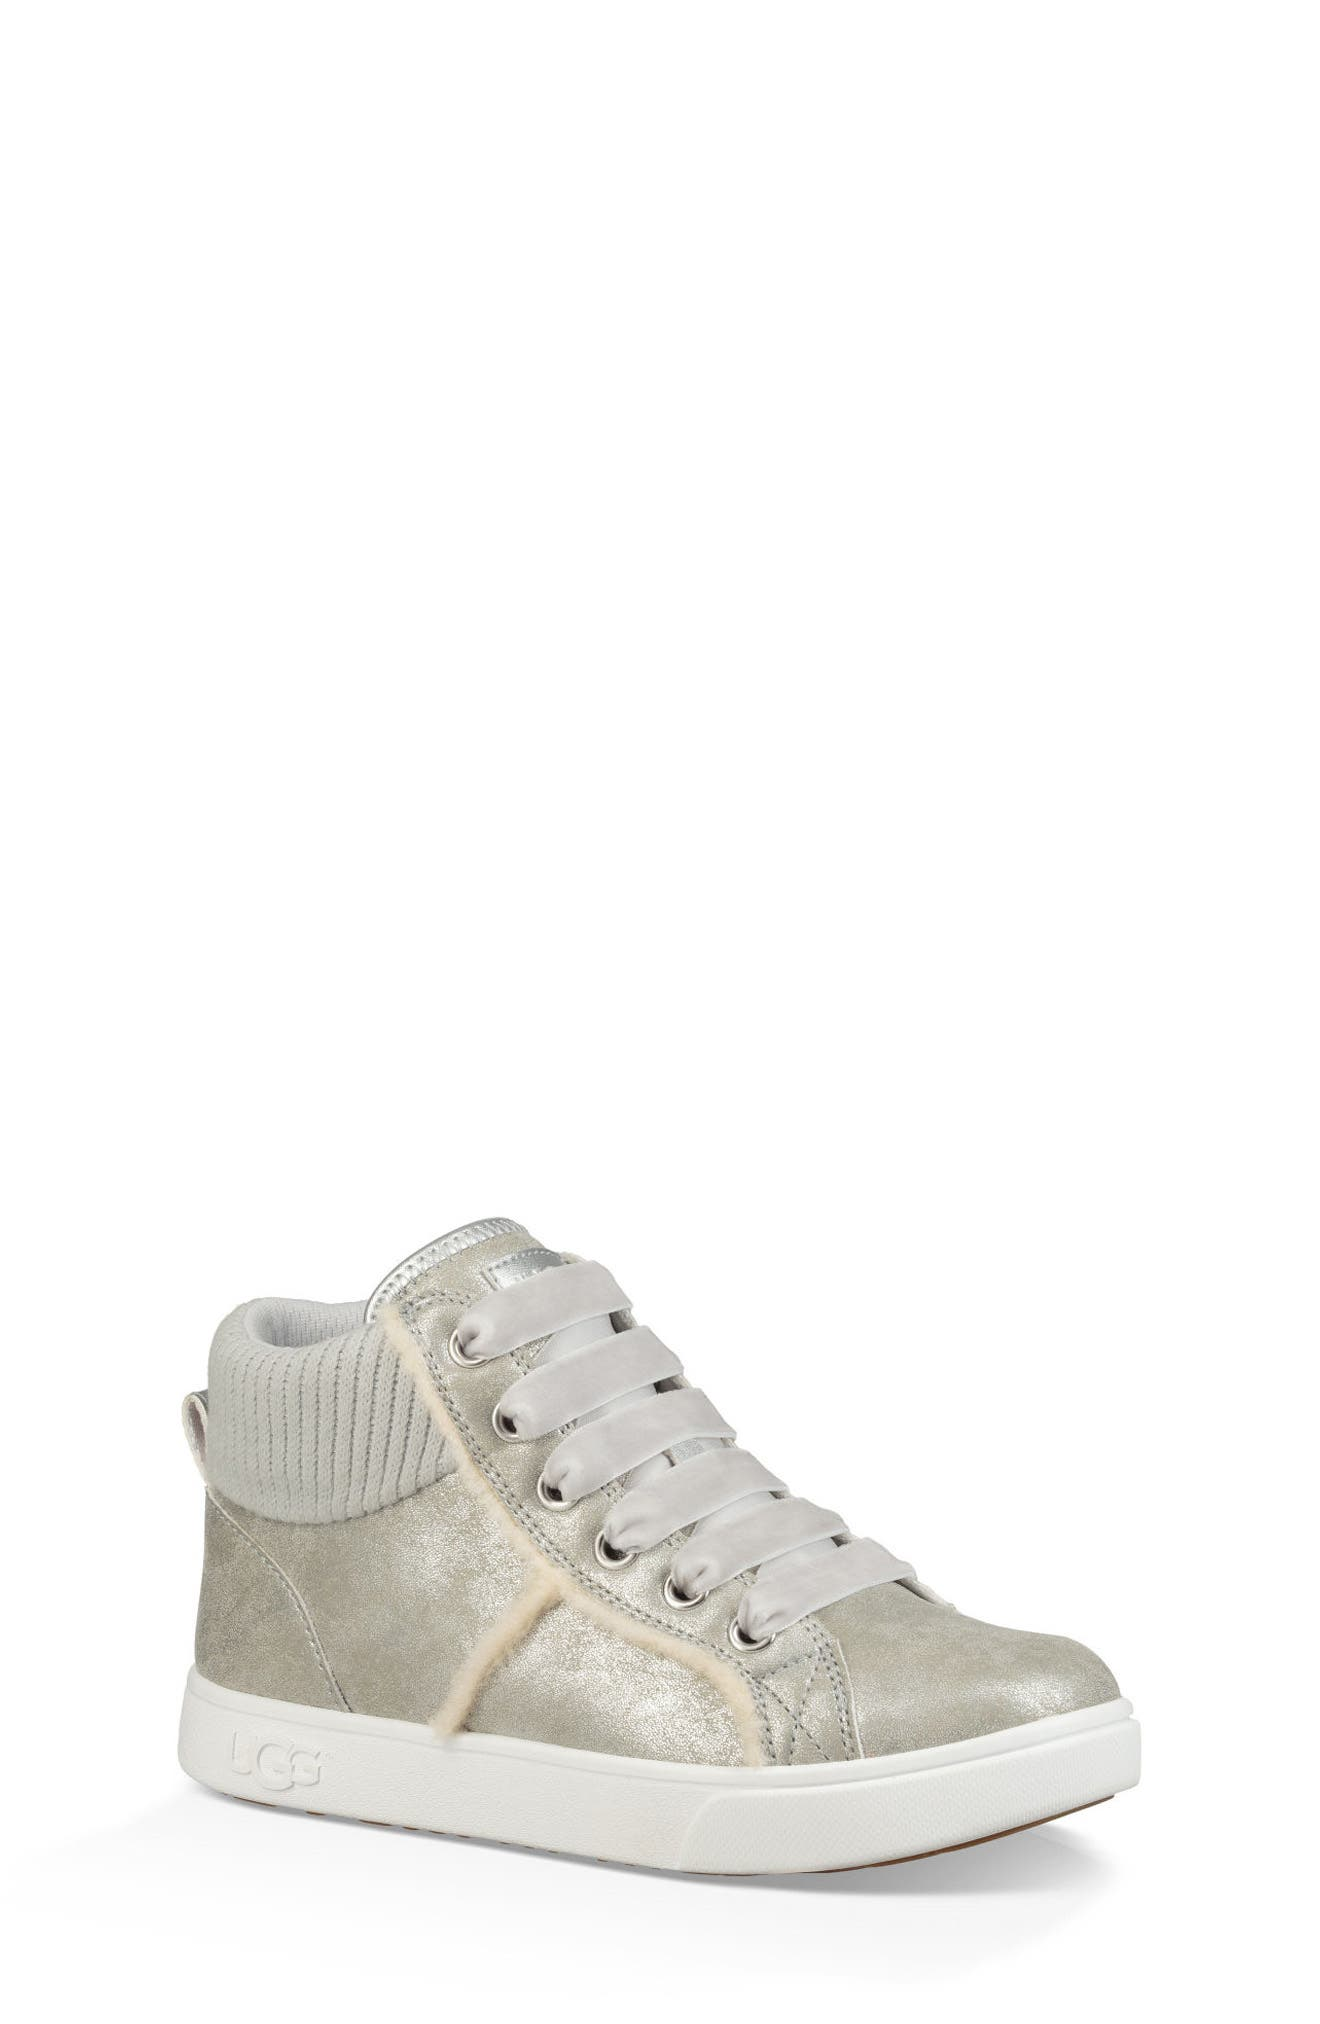 Addie High Top Sneaker,                             Main thumbnail 1, color,                             SILVER